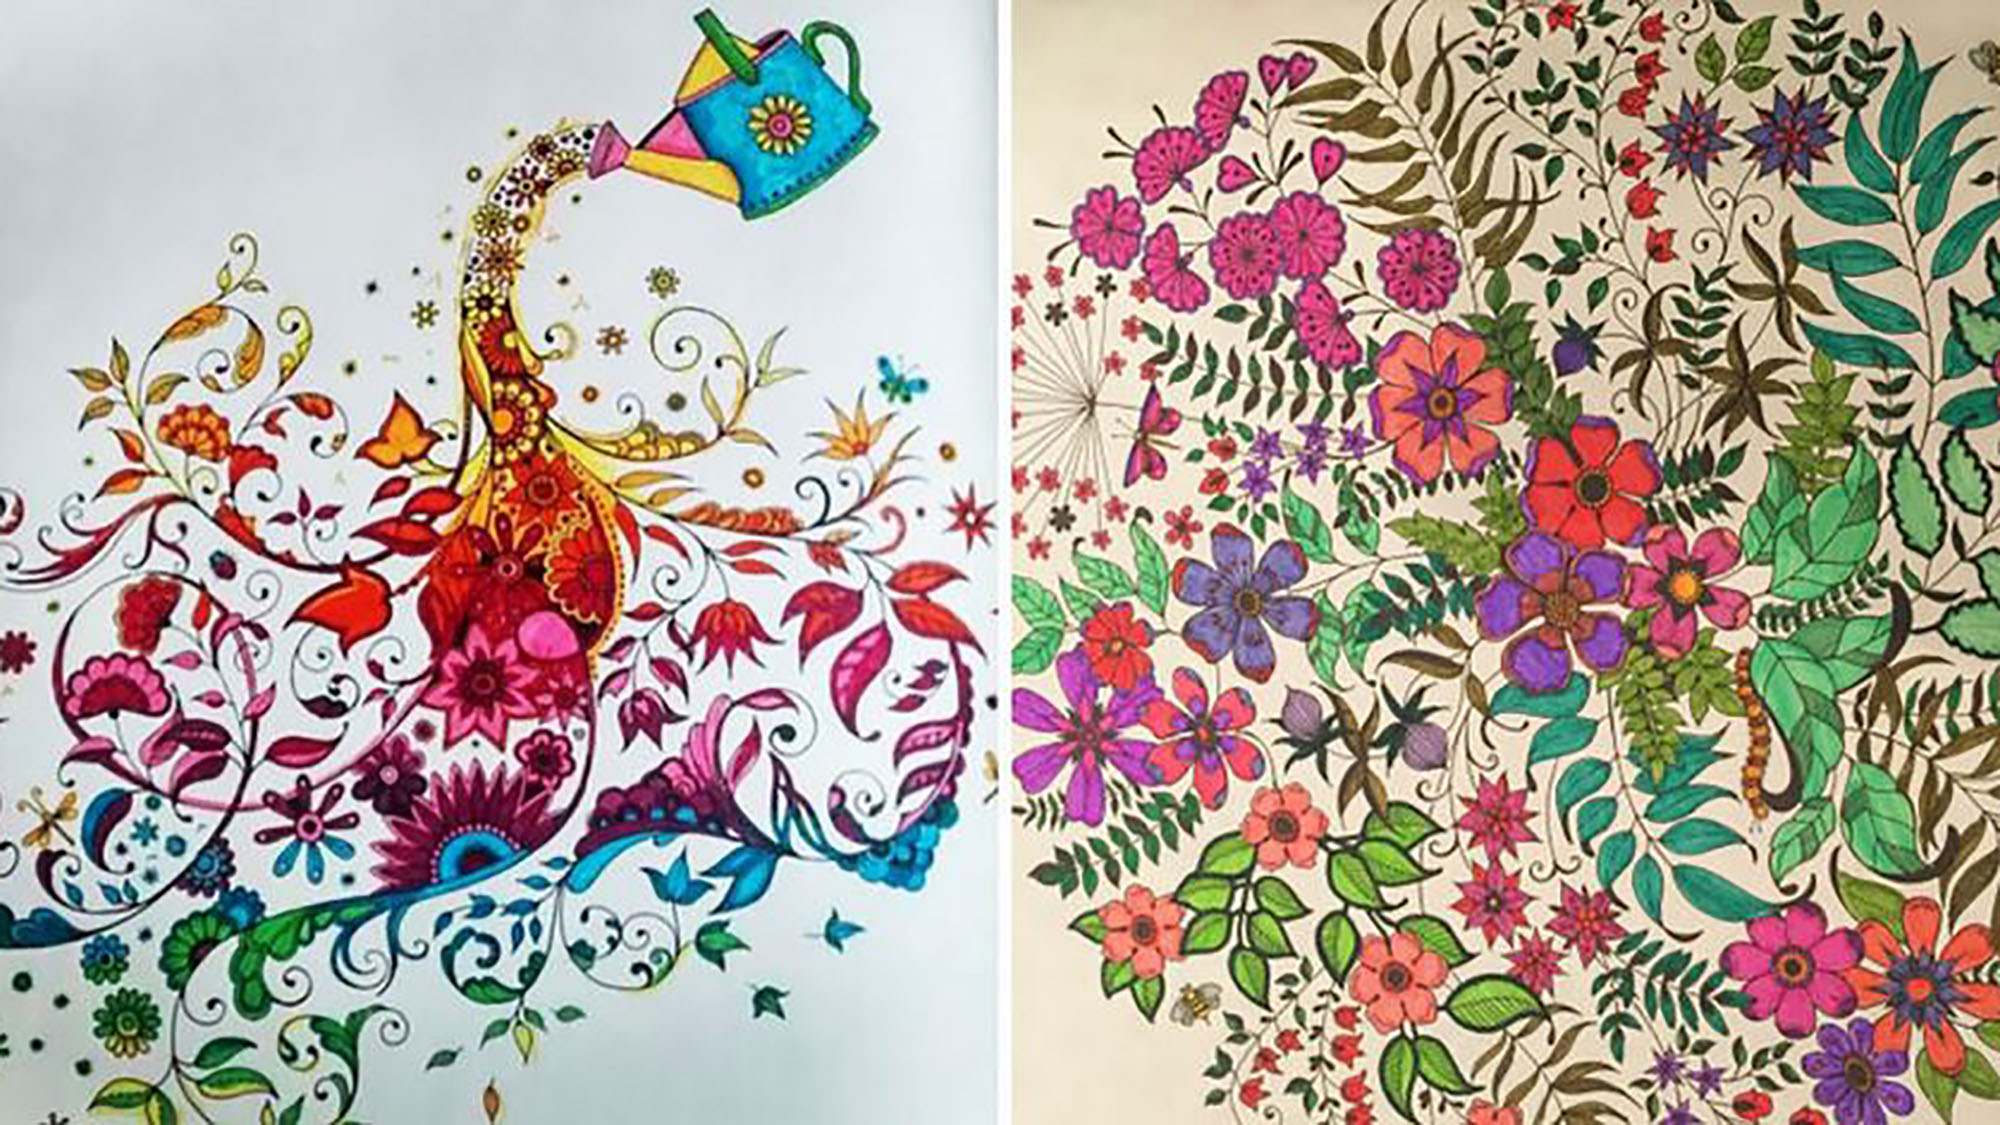 Colouring books for adults? They're selling like hotcakes